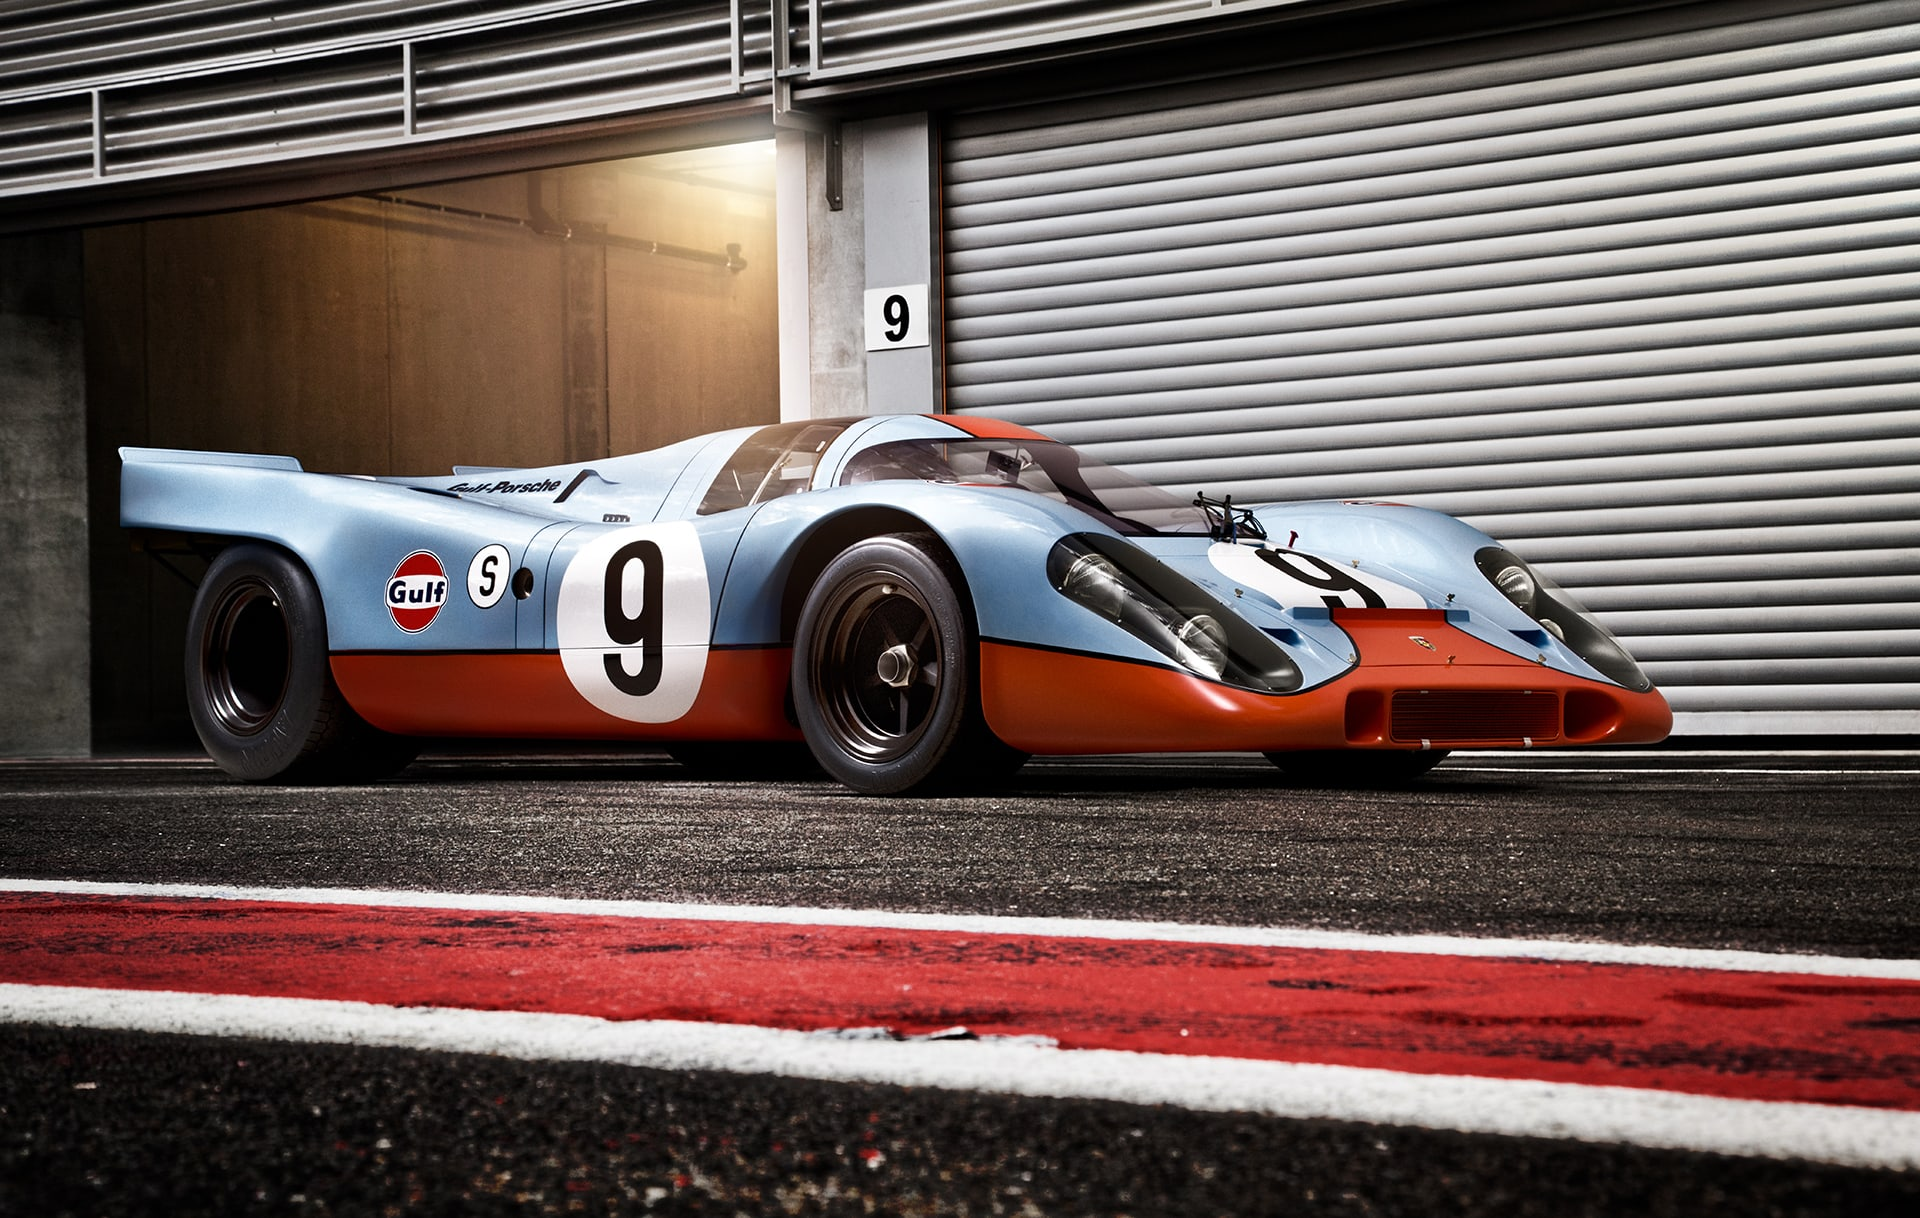 Porsche 917 Photographed by Automotive Photographer Blair Bunting